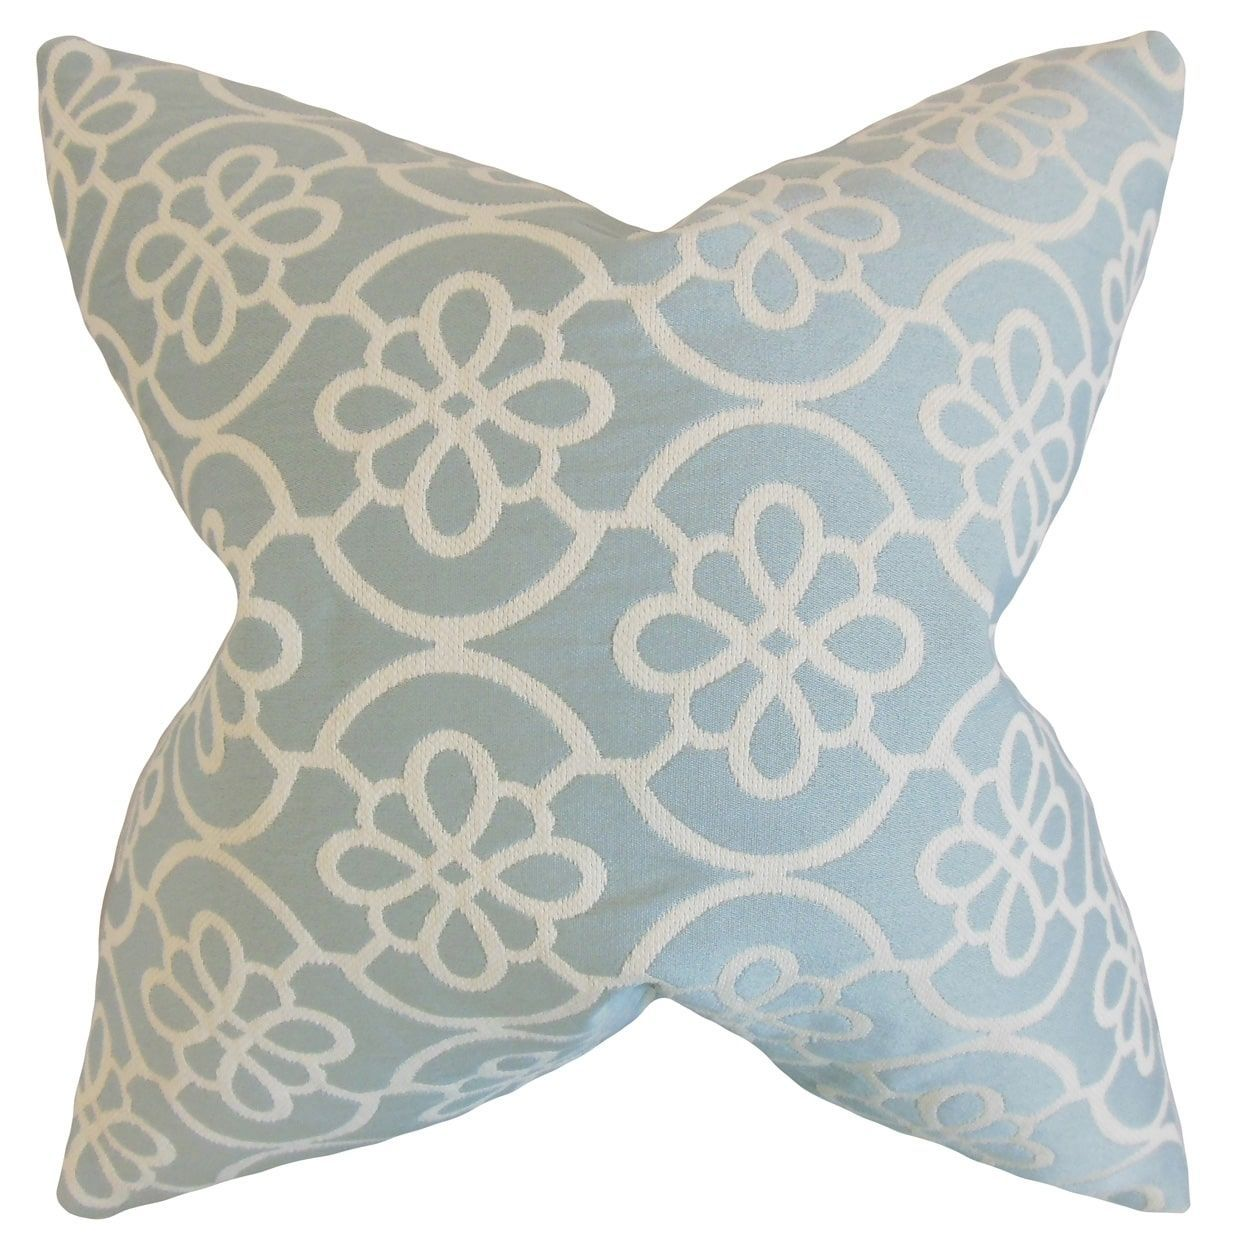 Indre geometric feather filled sea foam throw pillow inch blue